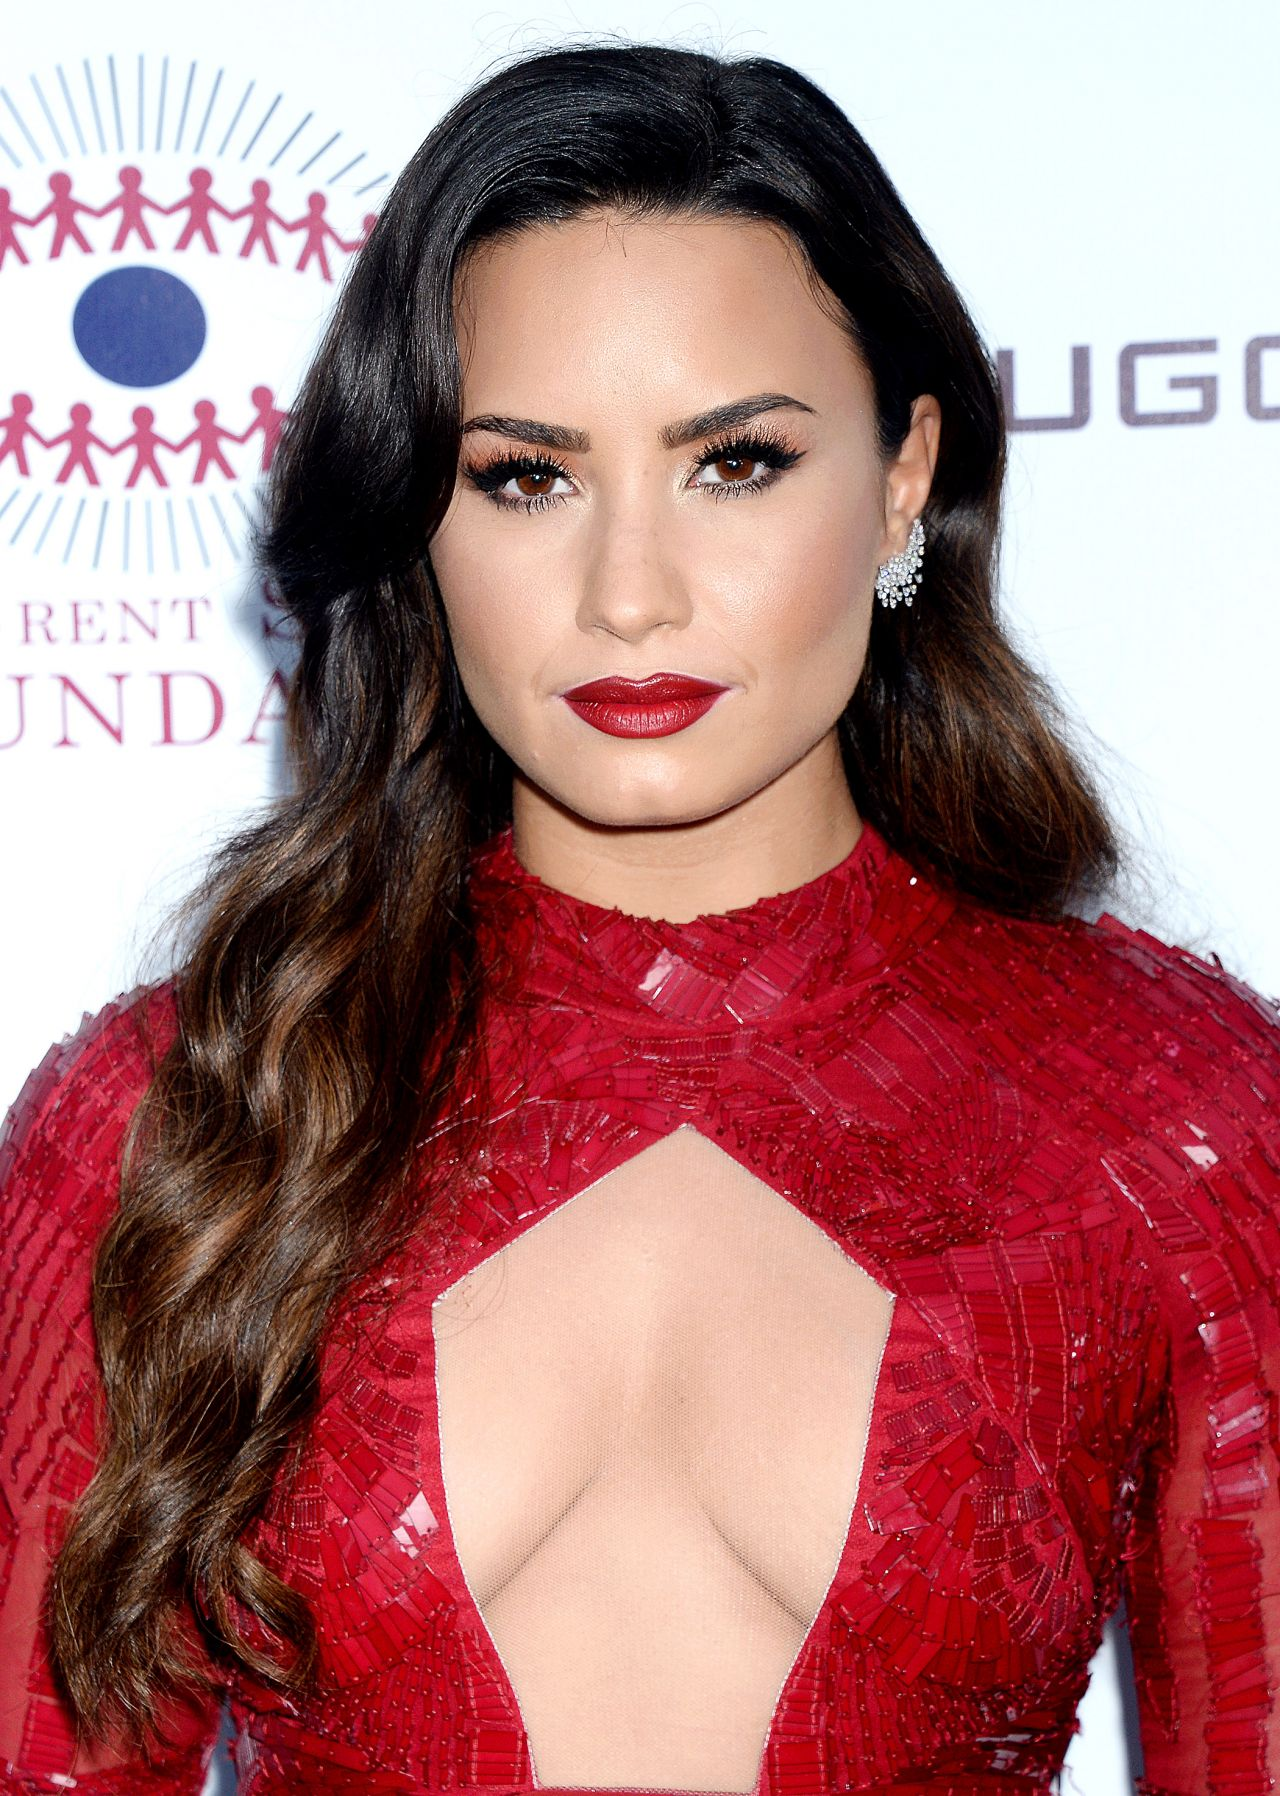 demi lovato - photo #49